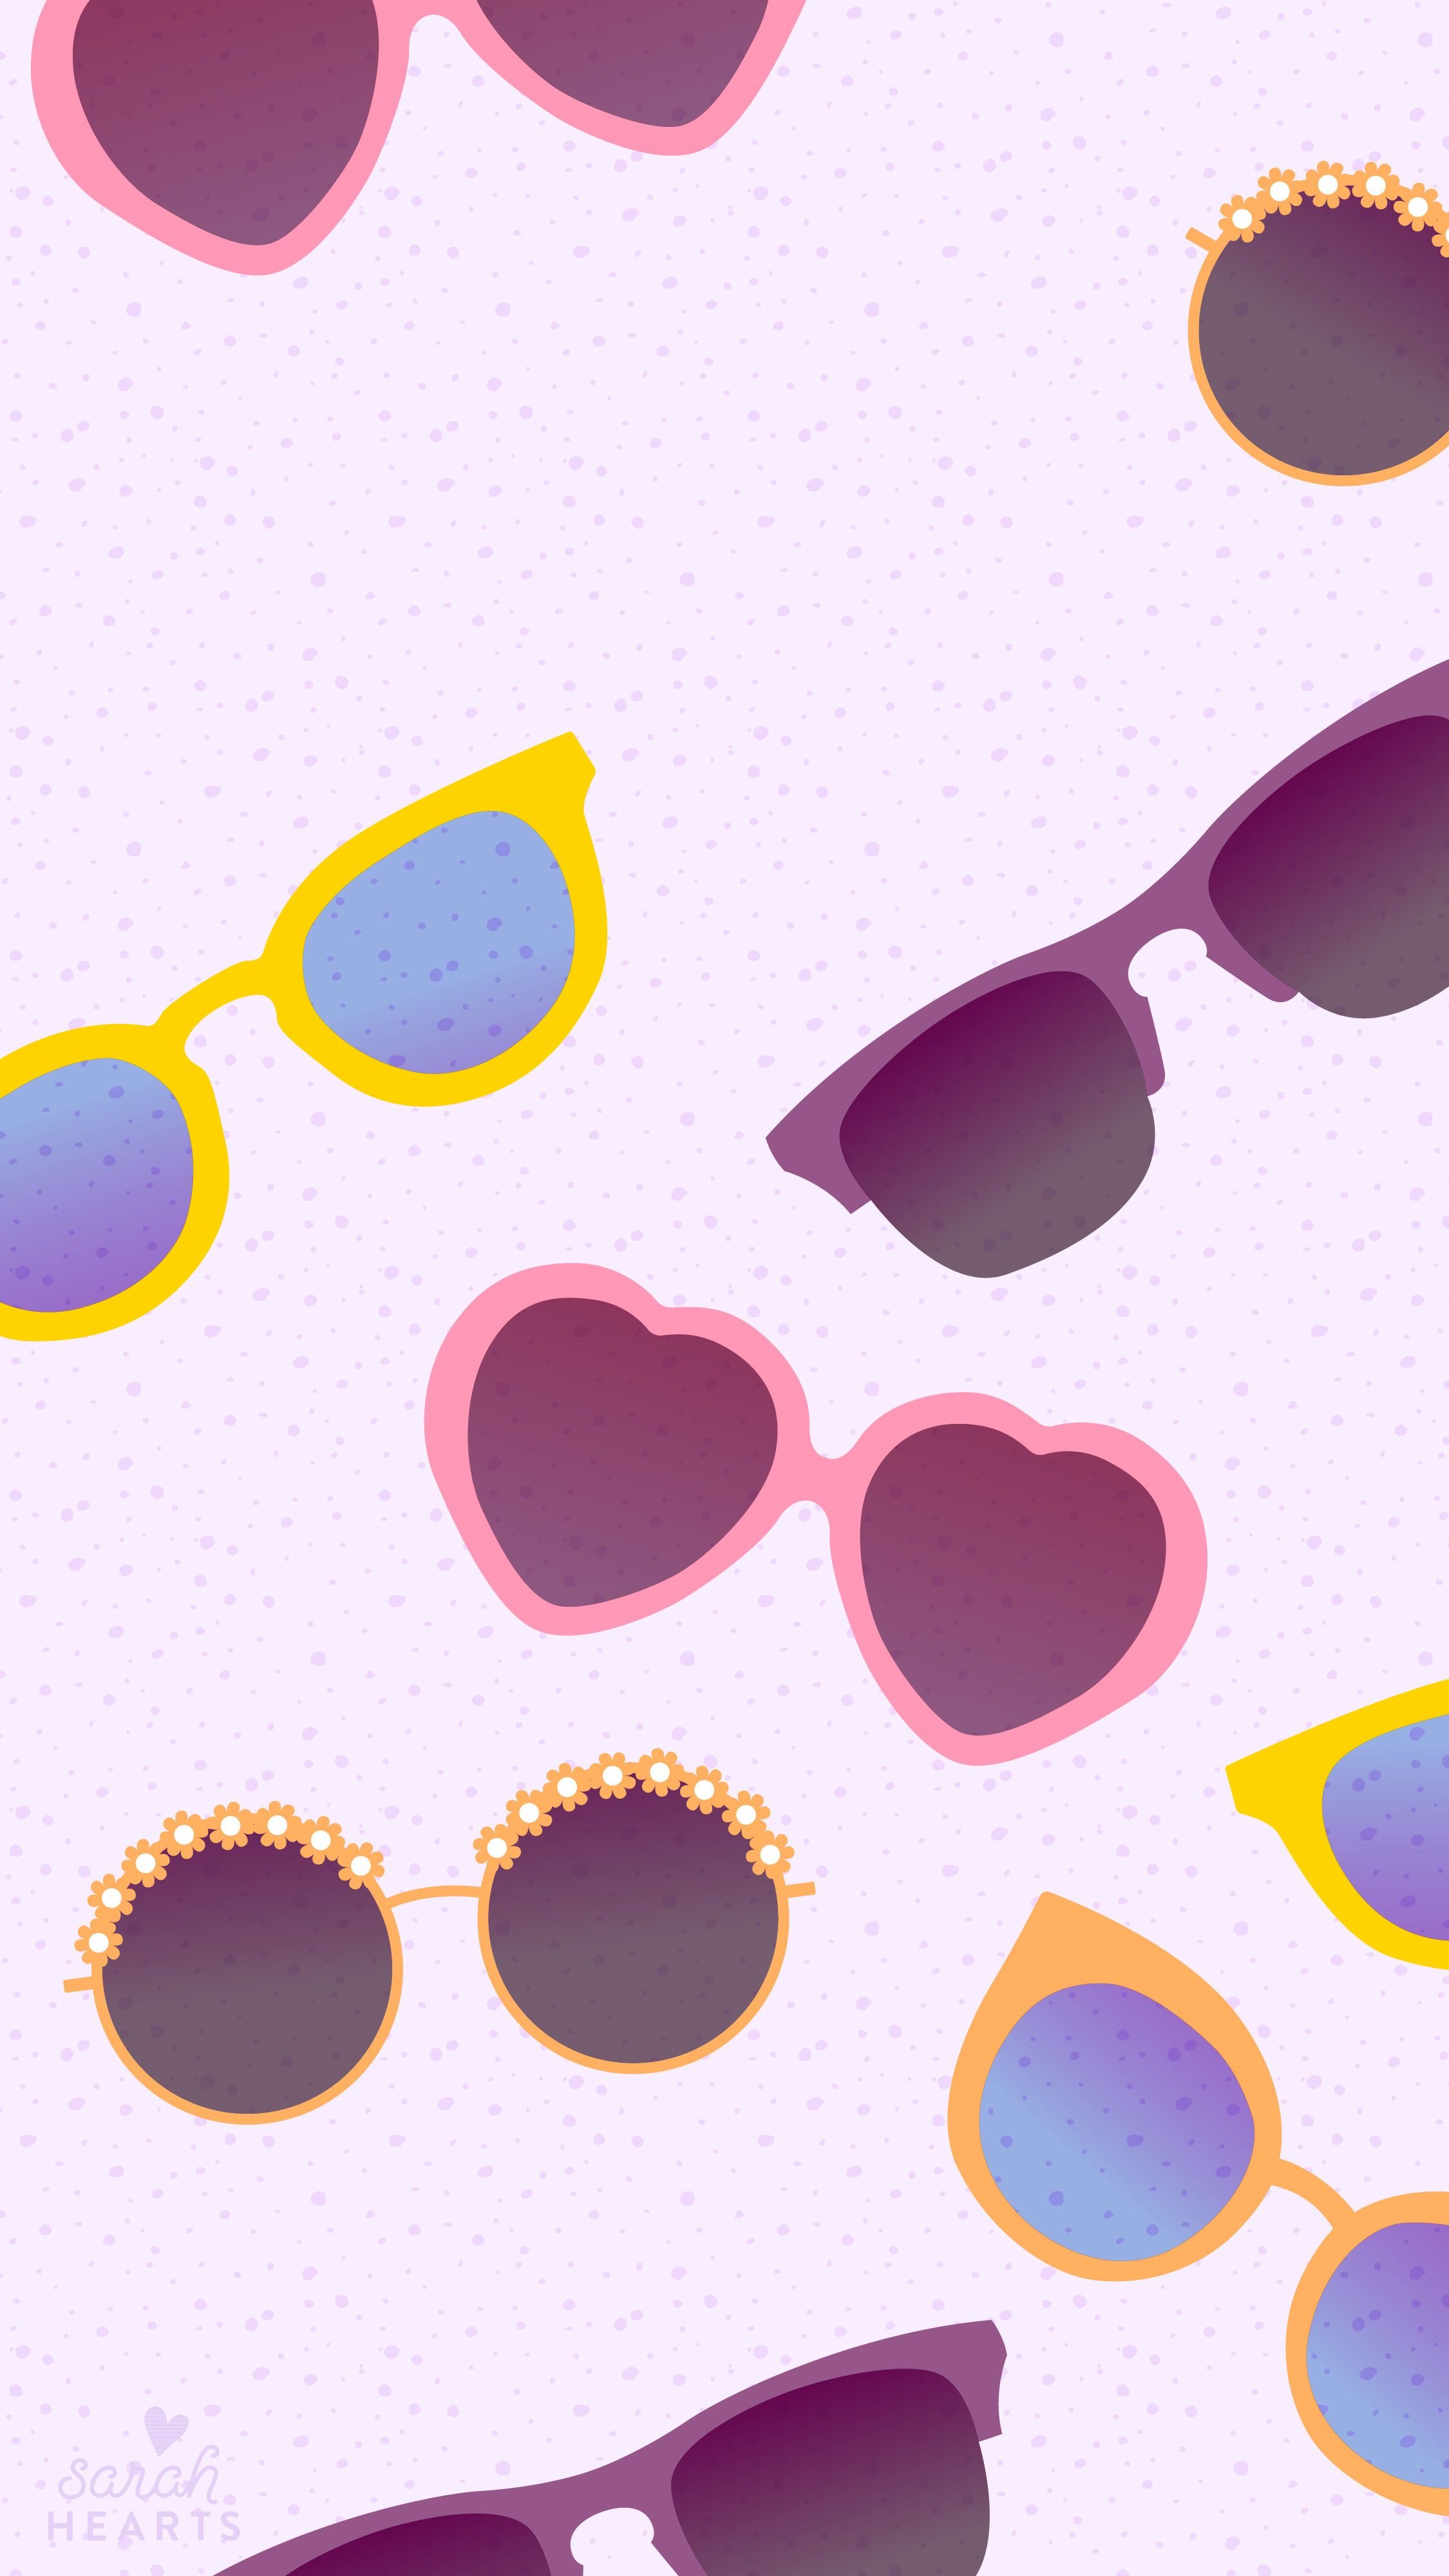 Free adorable sunglasses iPhone wallpaper by sarahhearts.com ... b90f33d46db